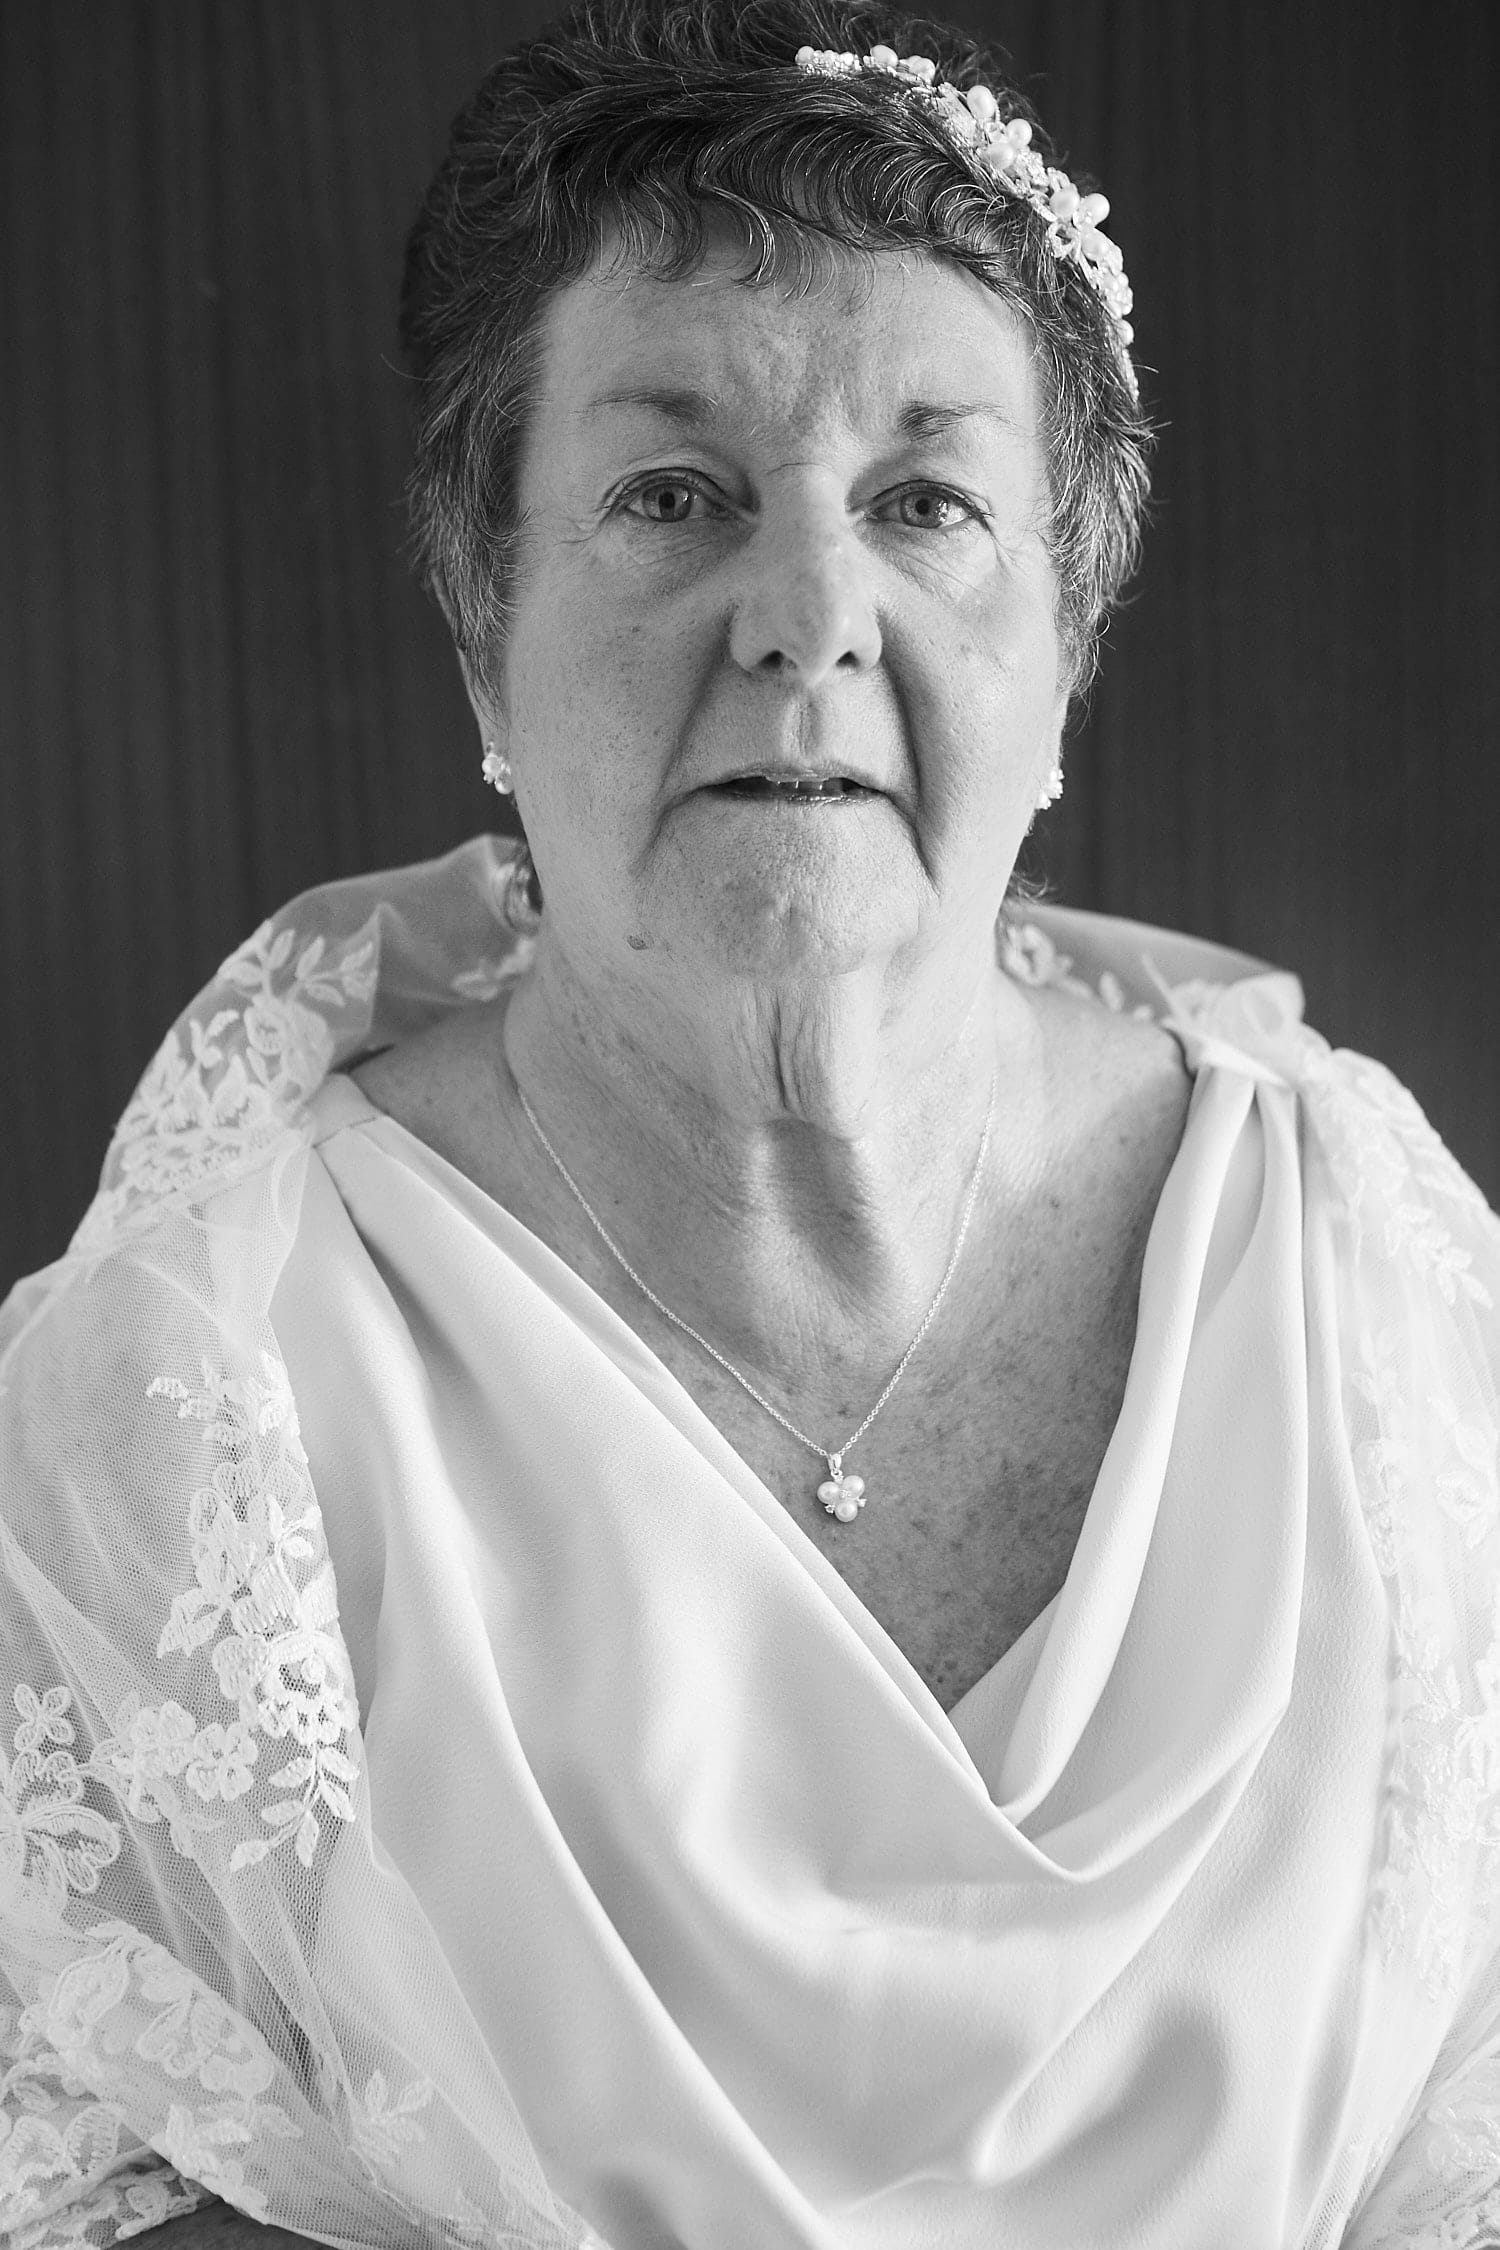 A black and white portrait of an older bride on her wedding day